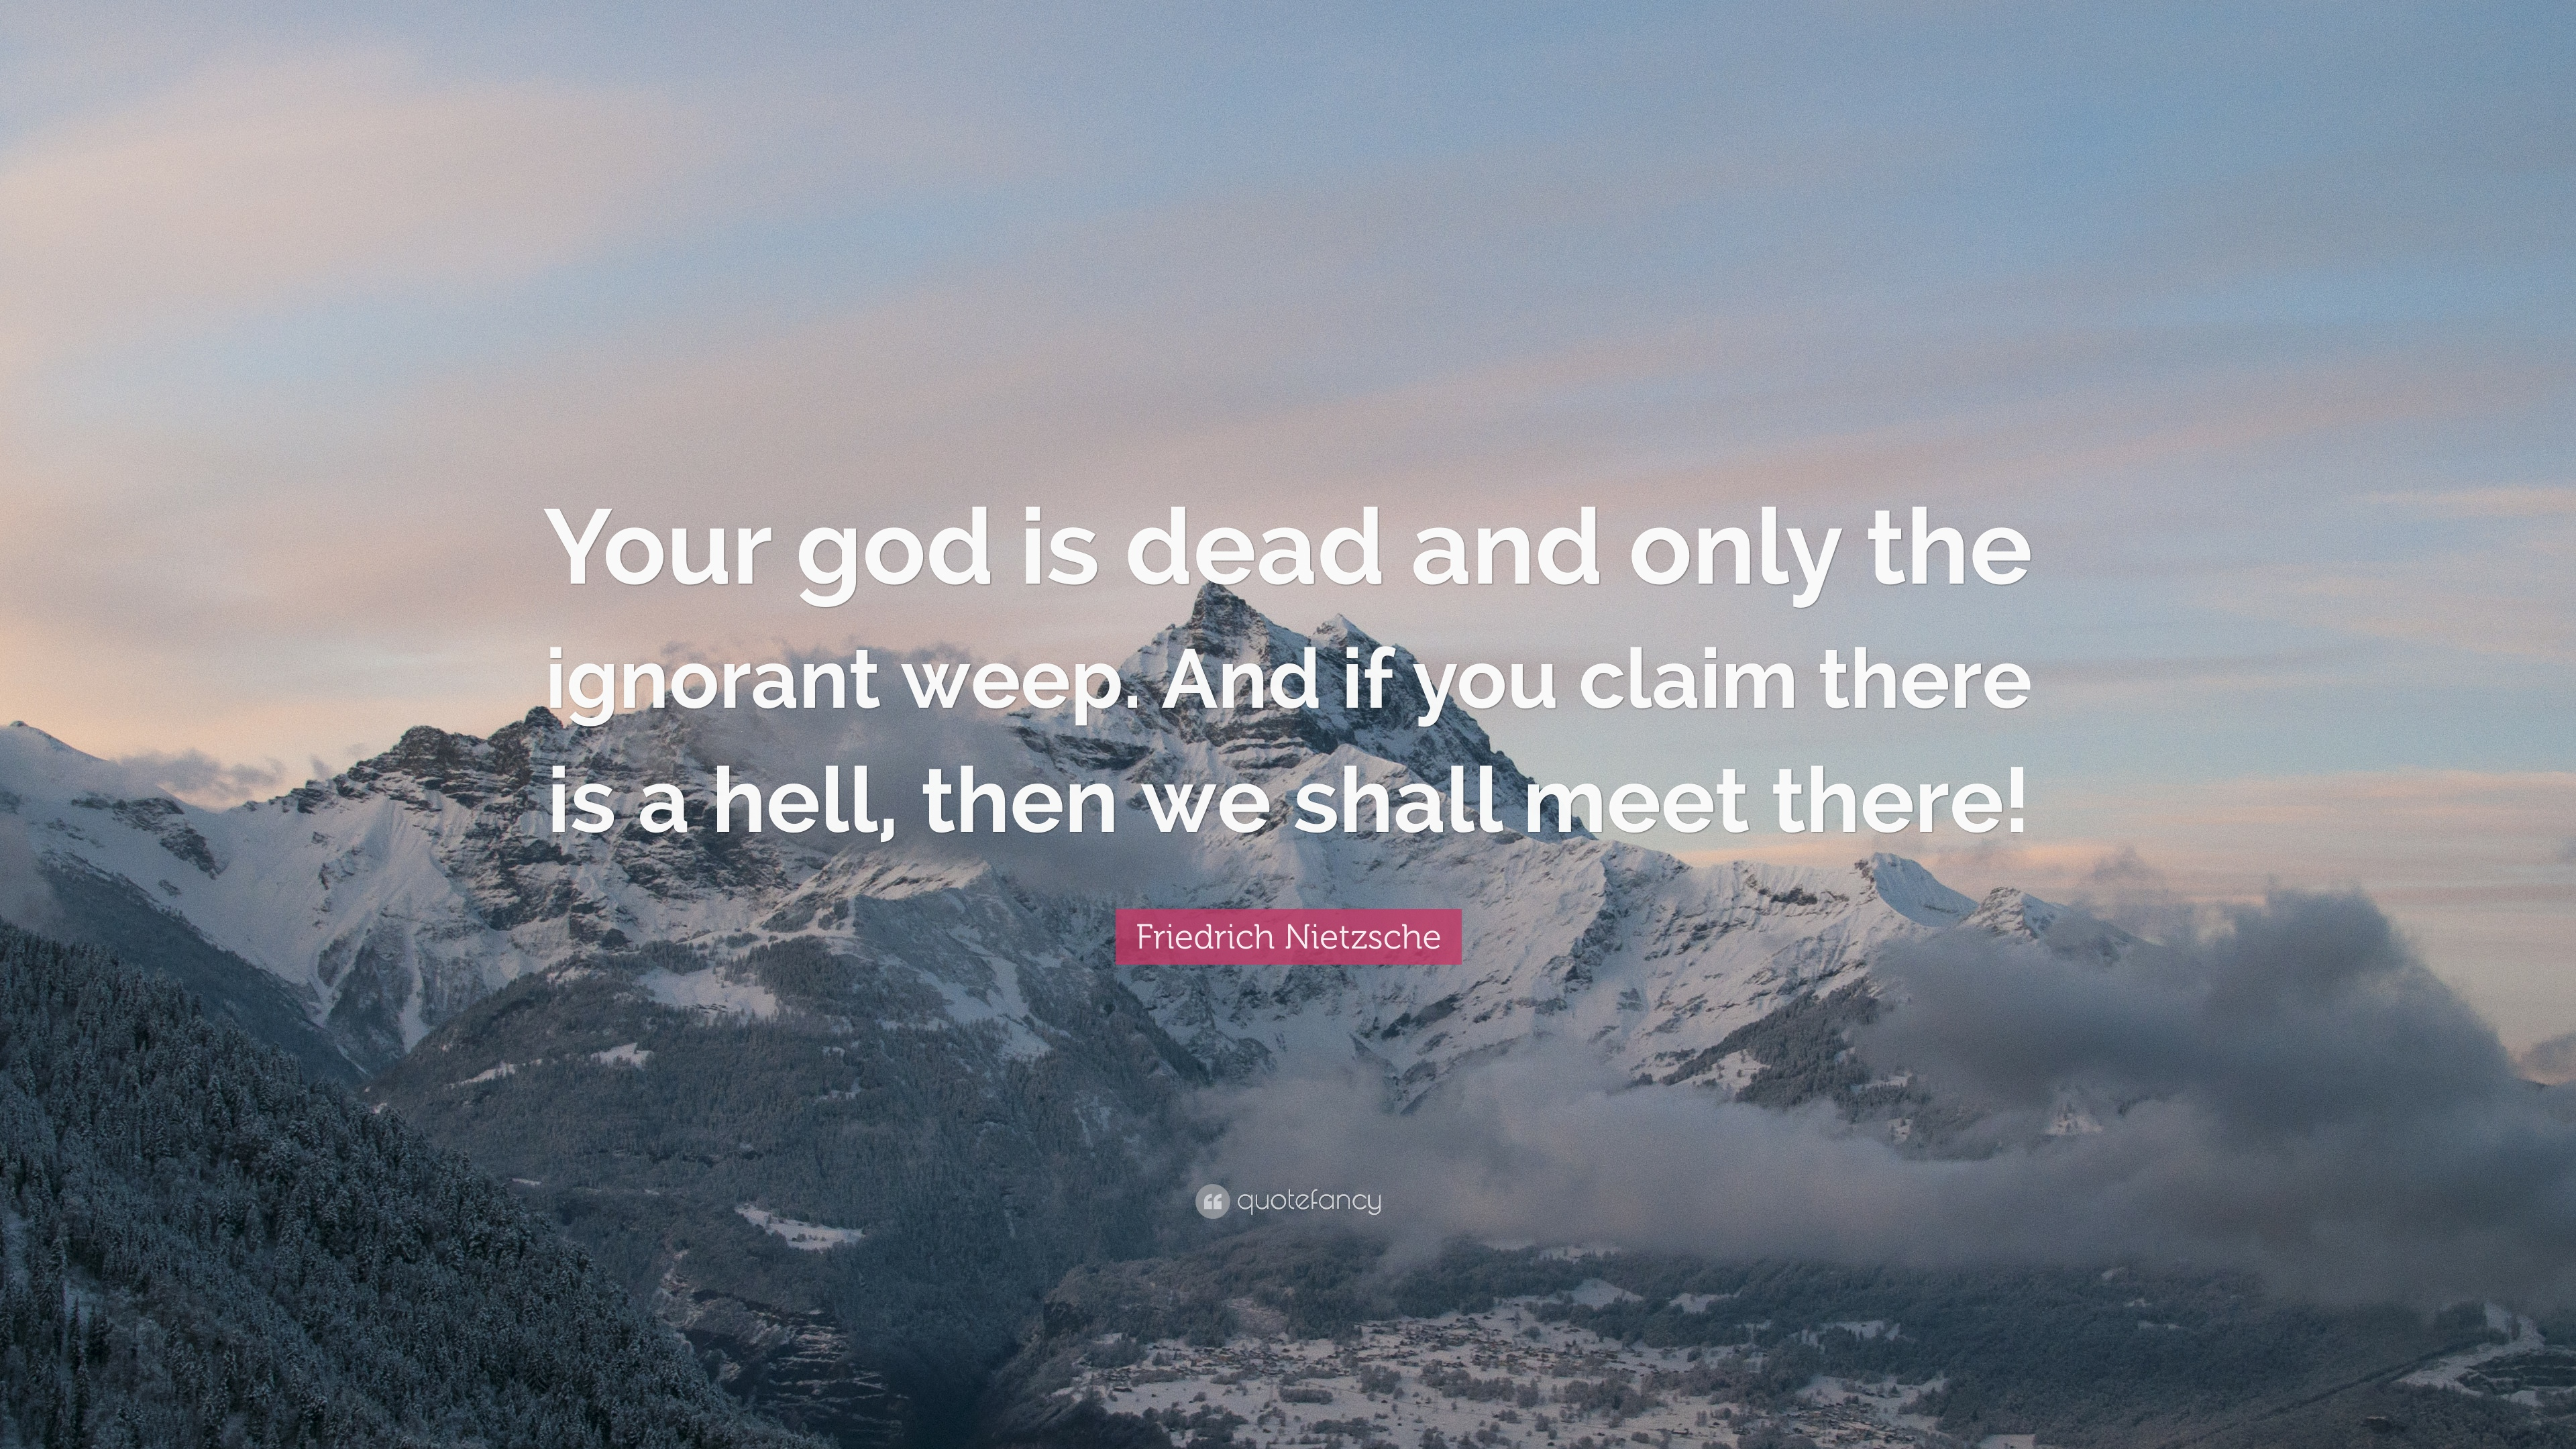 Friedrich Nietzsche Quote Your God Is Dead And Only The Ignorant